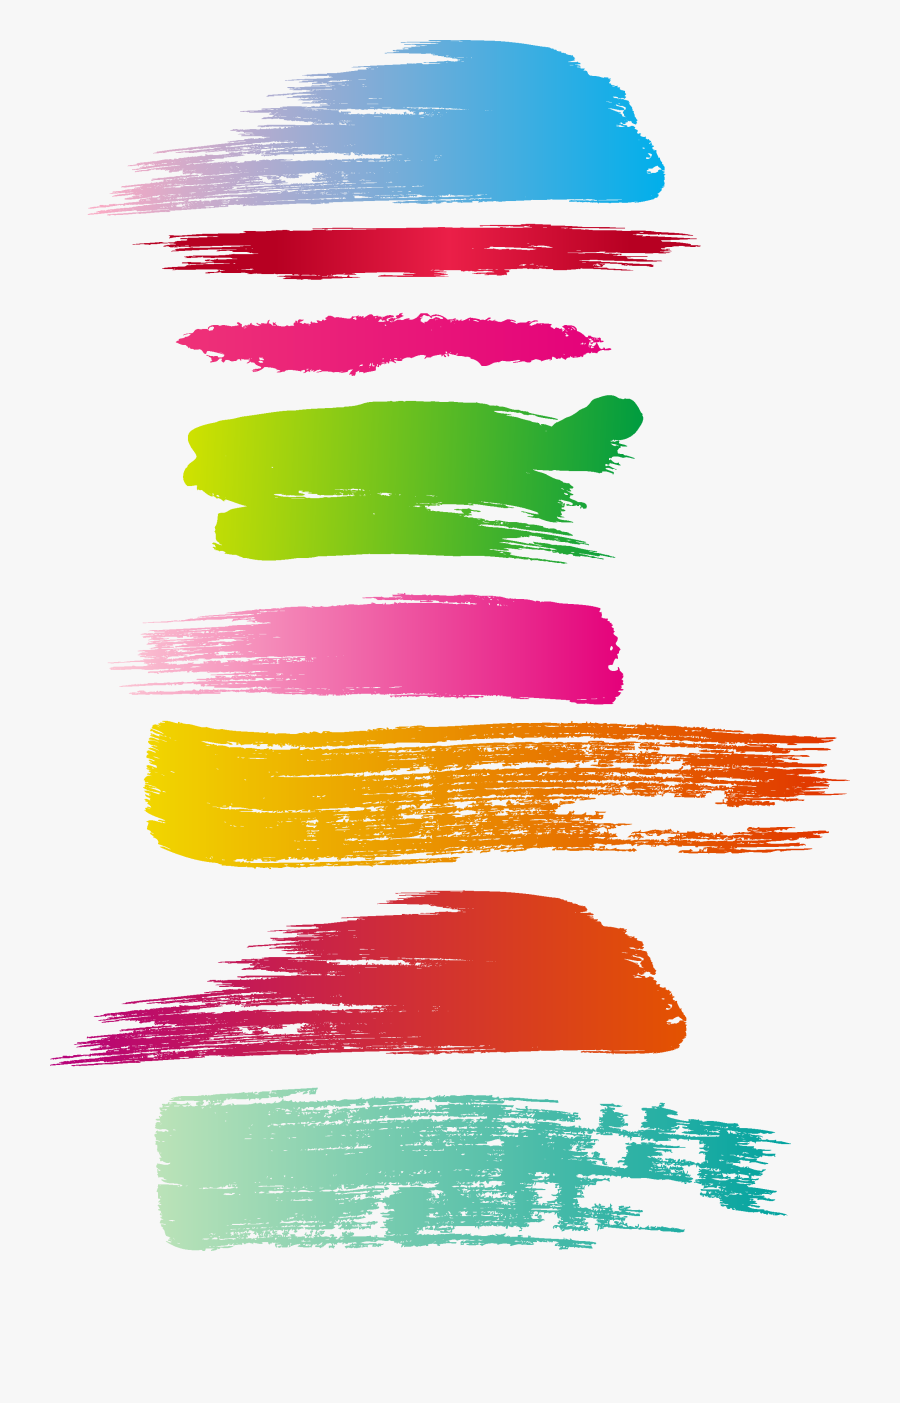 Paintbrush Watercolor Painting Ink Brush Abstract Illustration - Paint Illustrator, Transparent Clipart